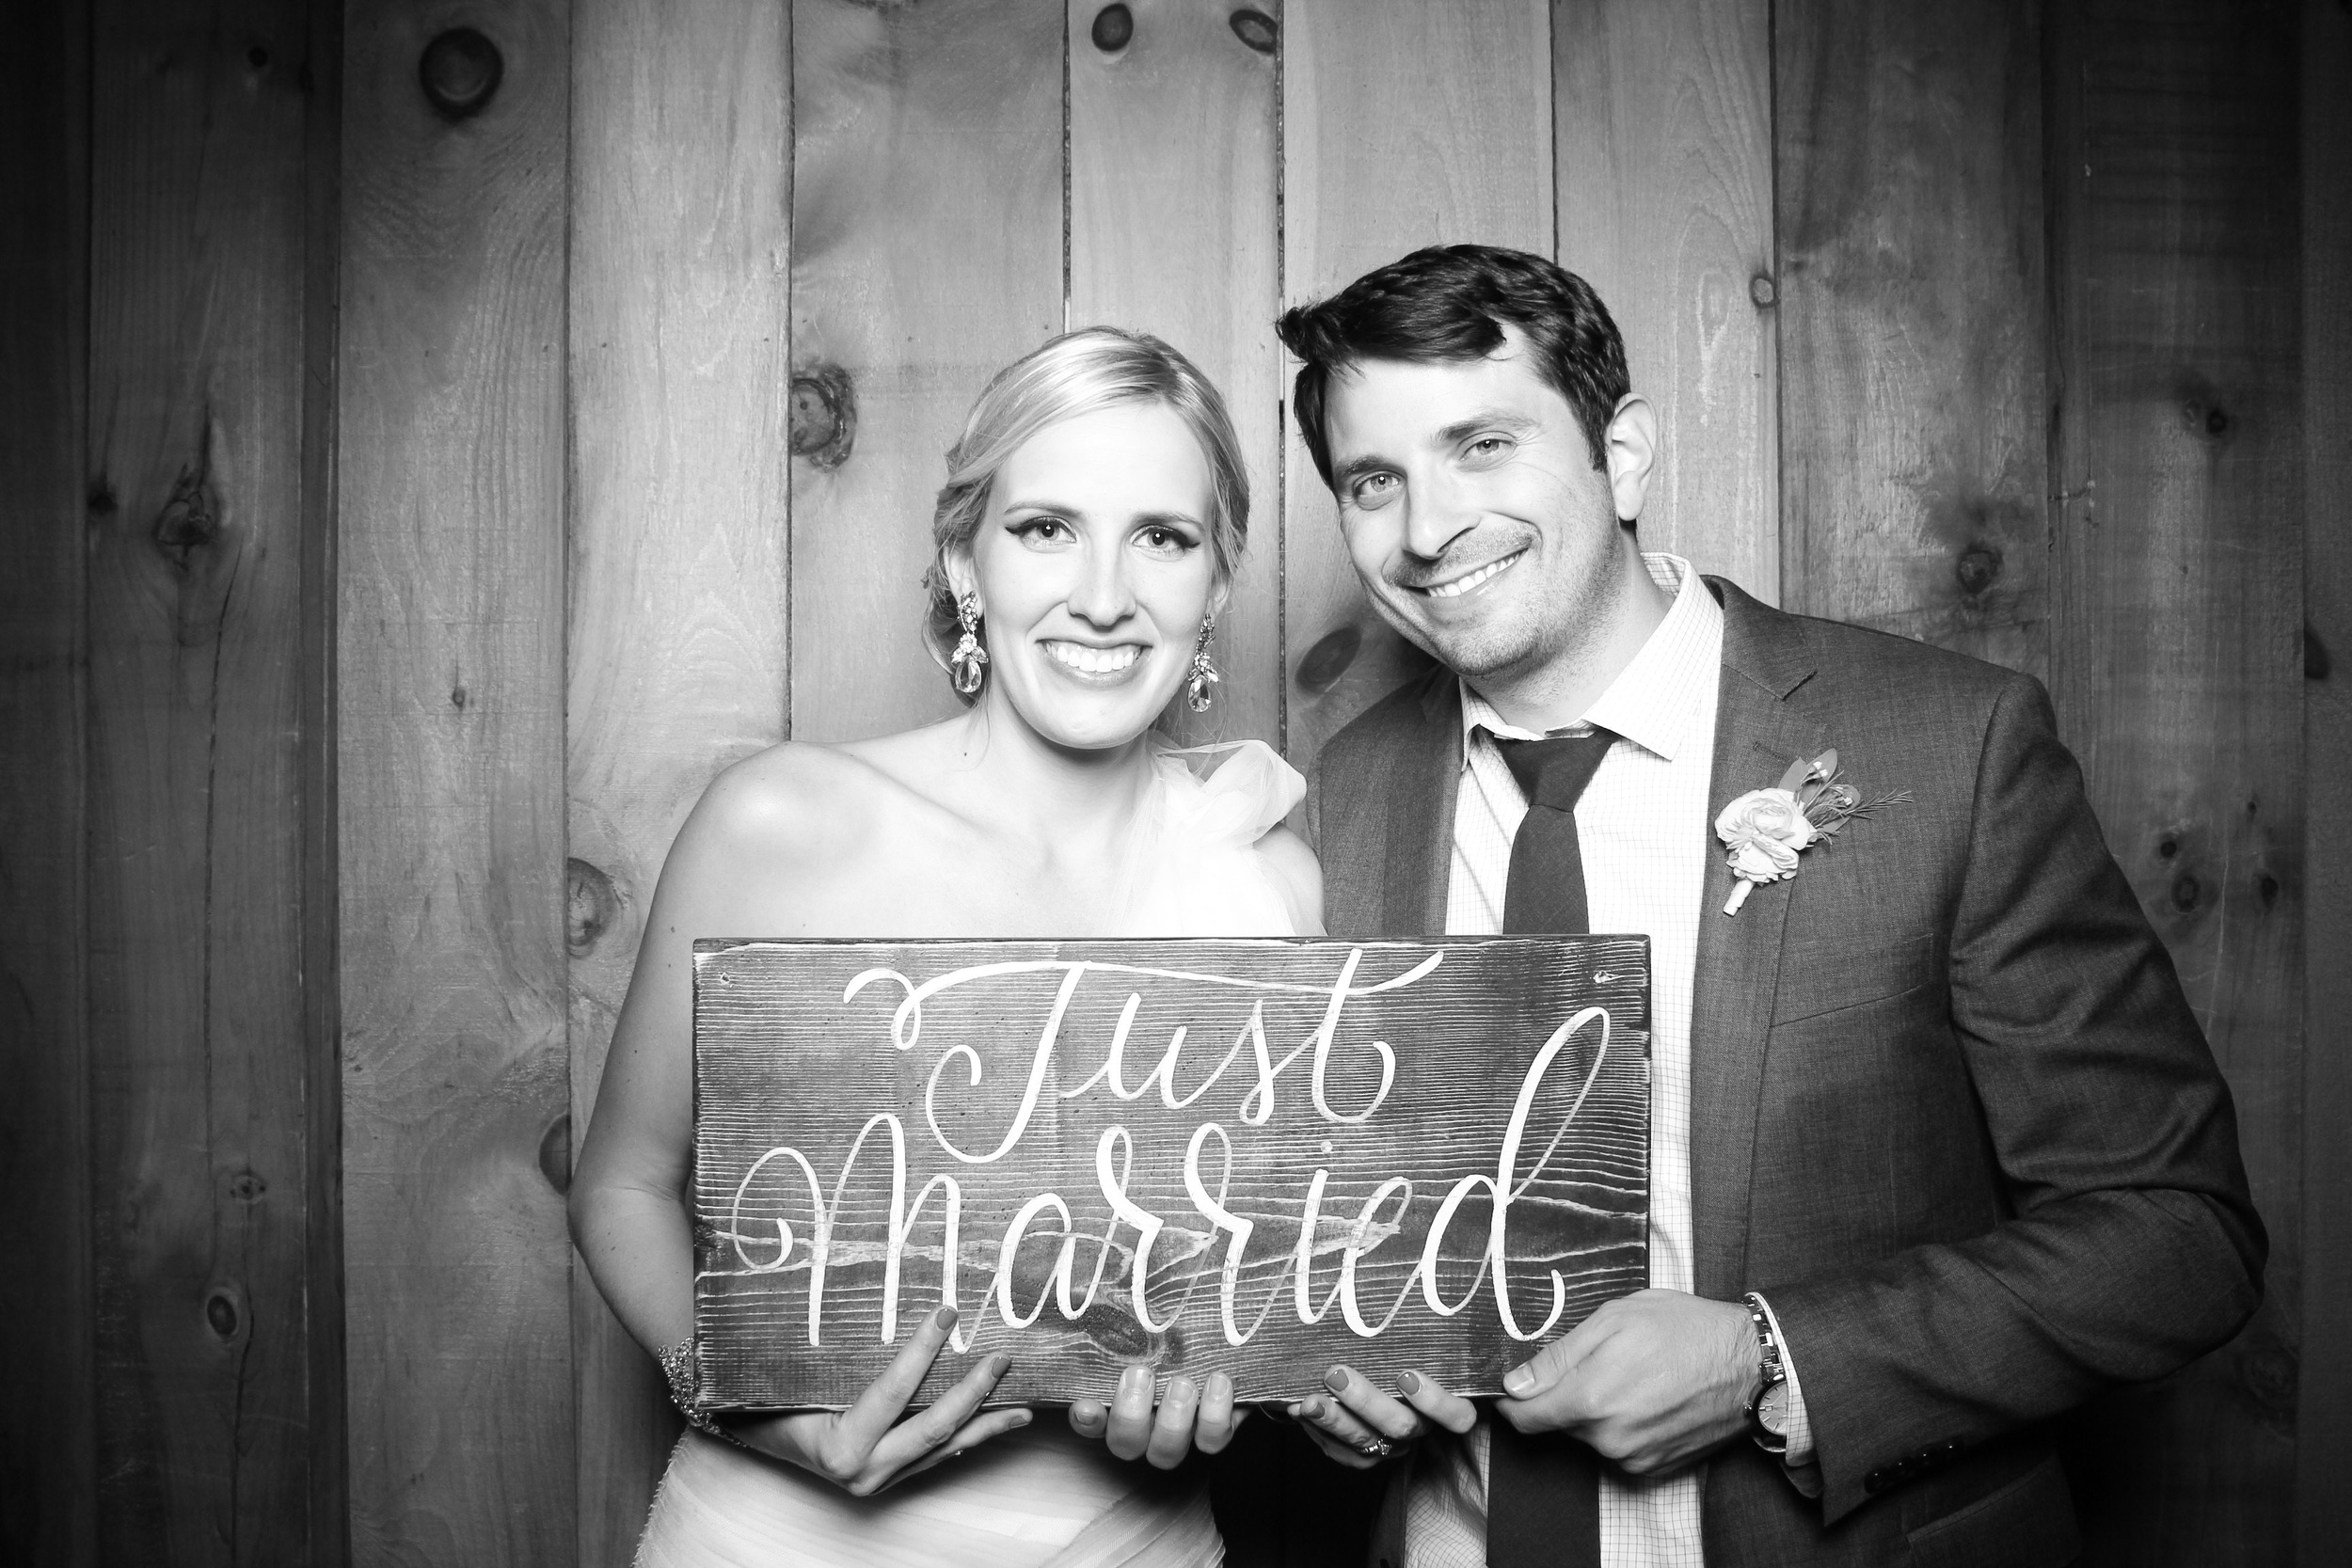 The bride and groom take a photo booth picture at County Line Orchard in Hobart, Indiana!